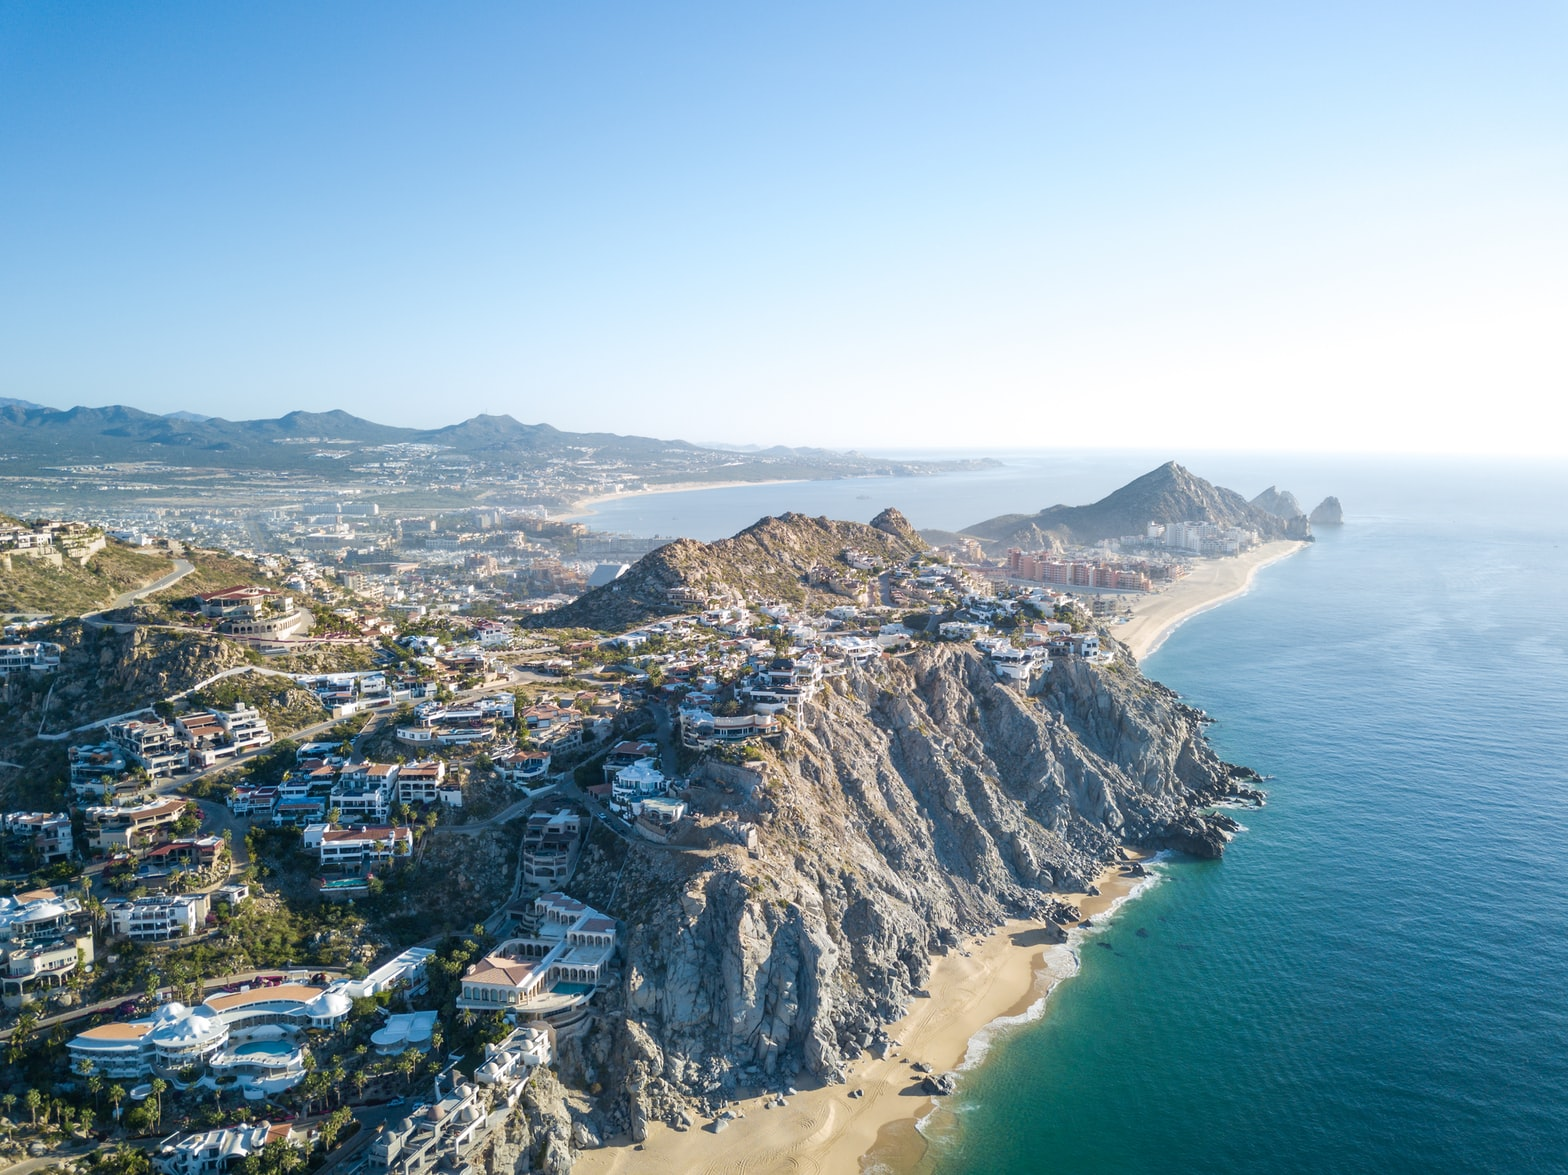 arial view of Cabo San Lucas, Mexico